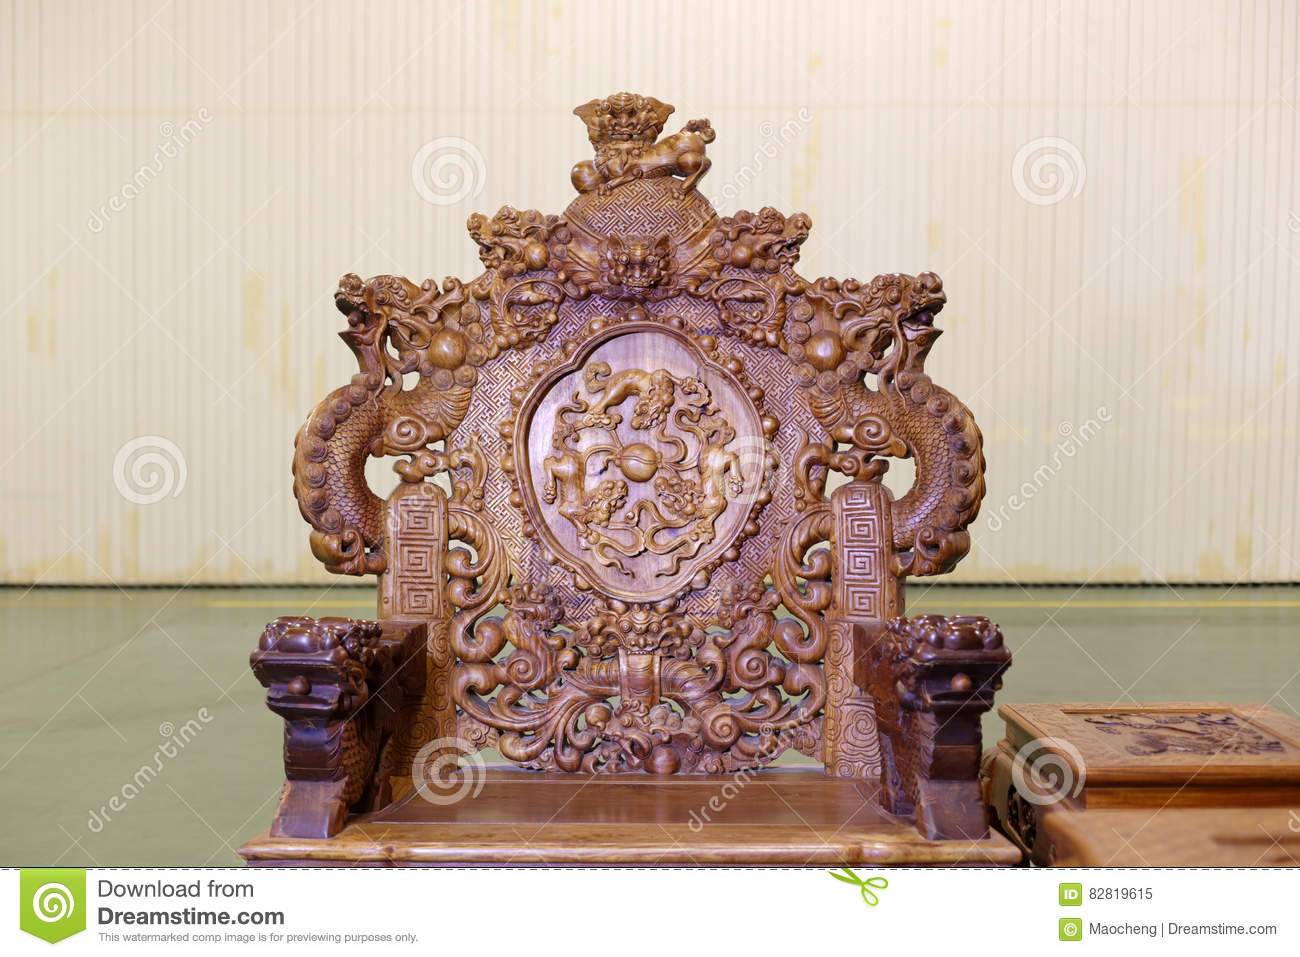 Chinese dragon chair - Chinese Dragon Chair Stock Image. Image Of Elegant, Classic - 82819615